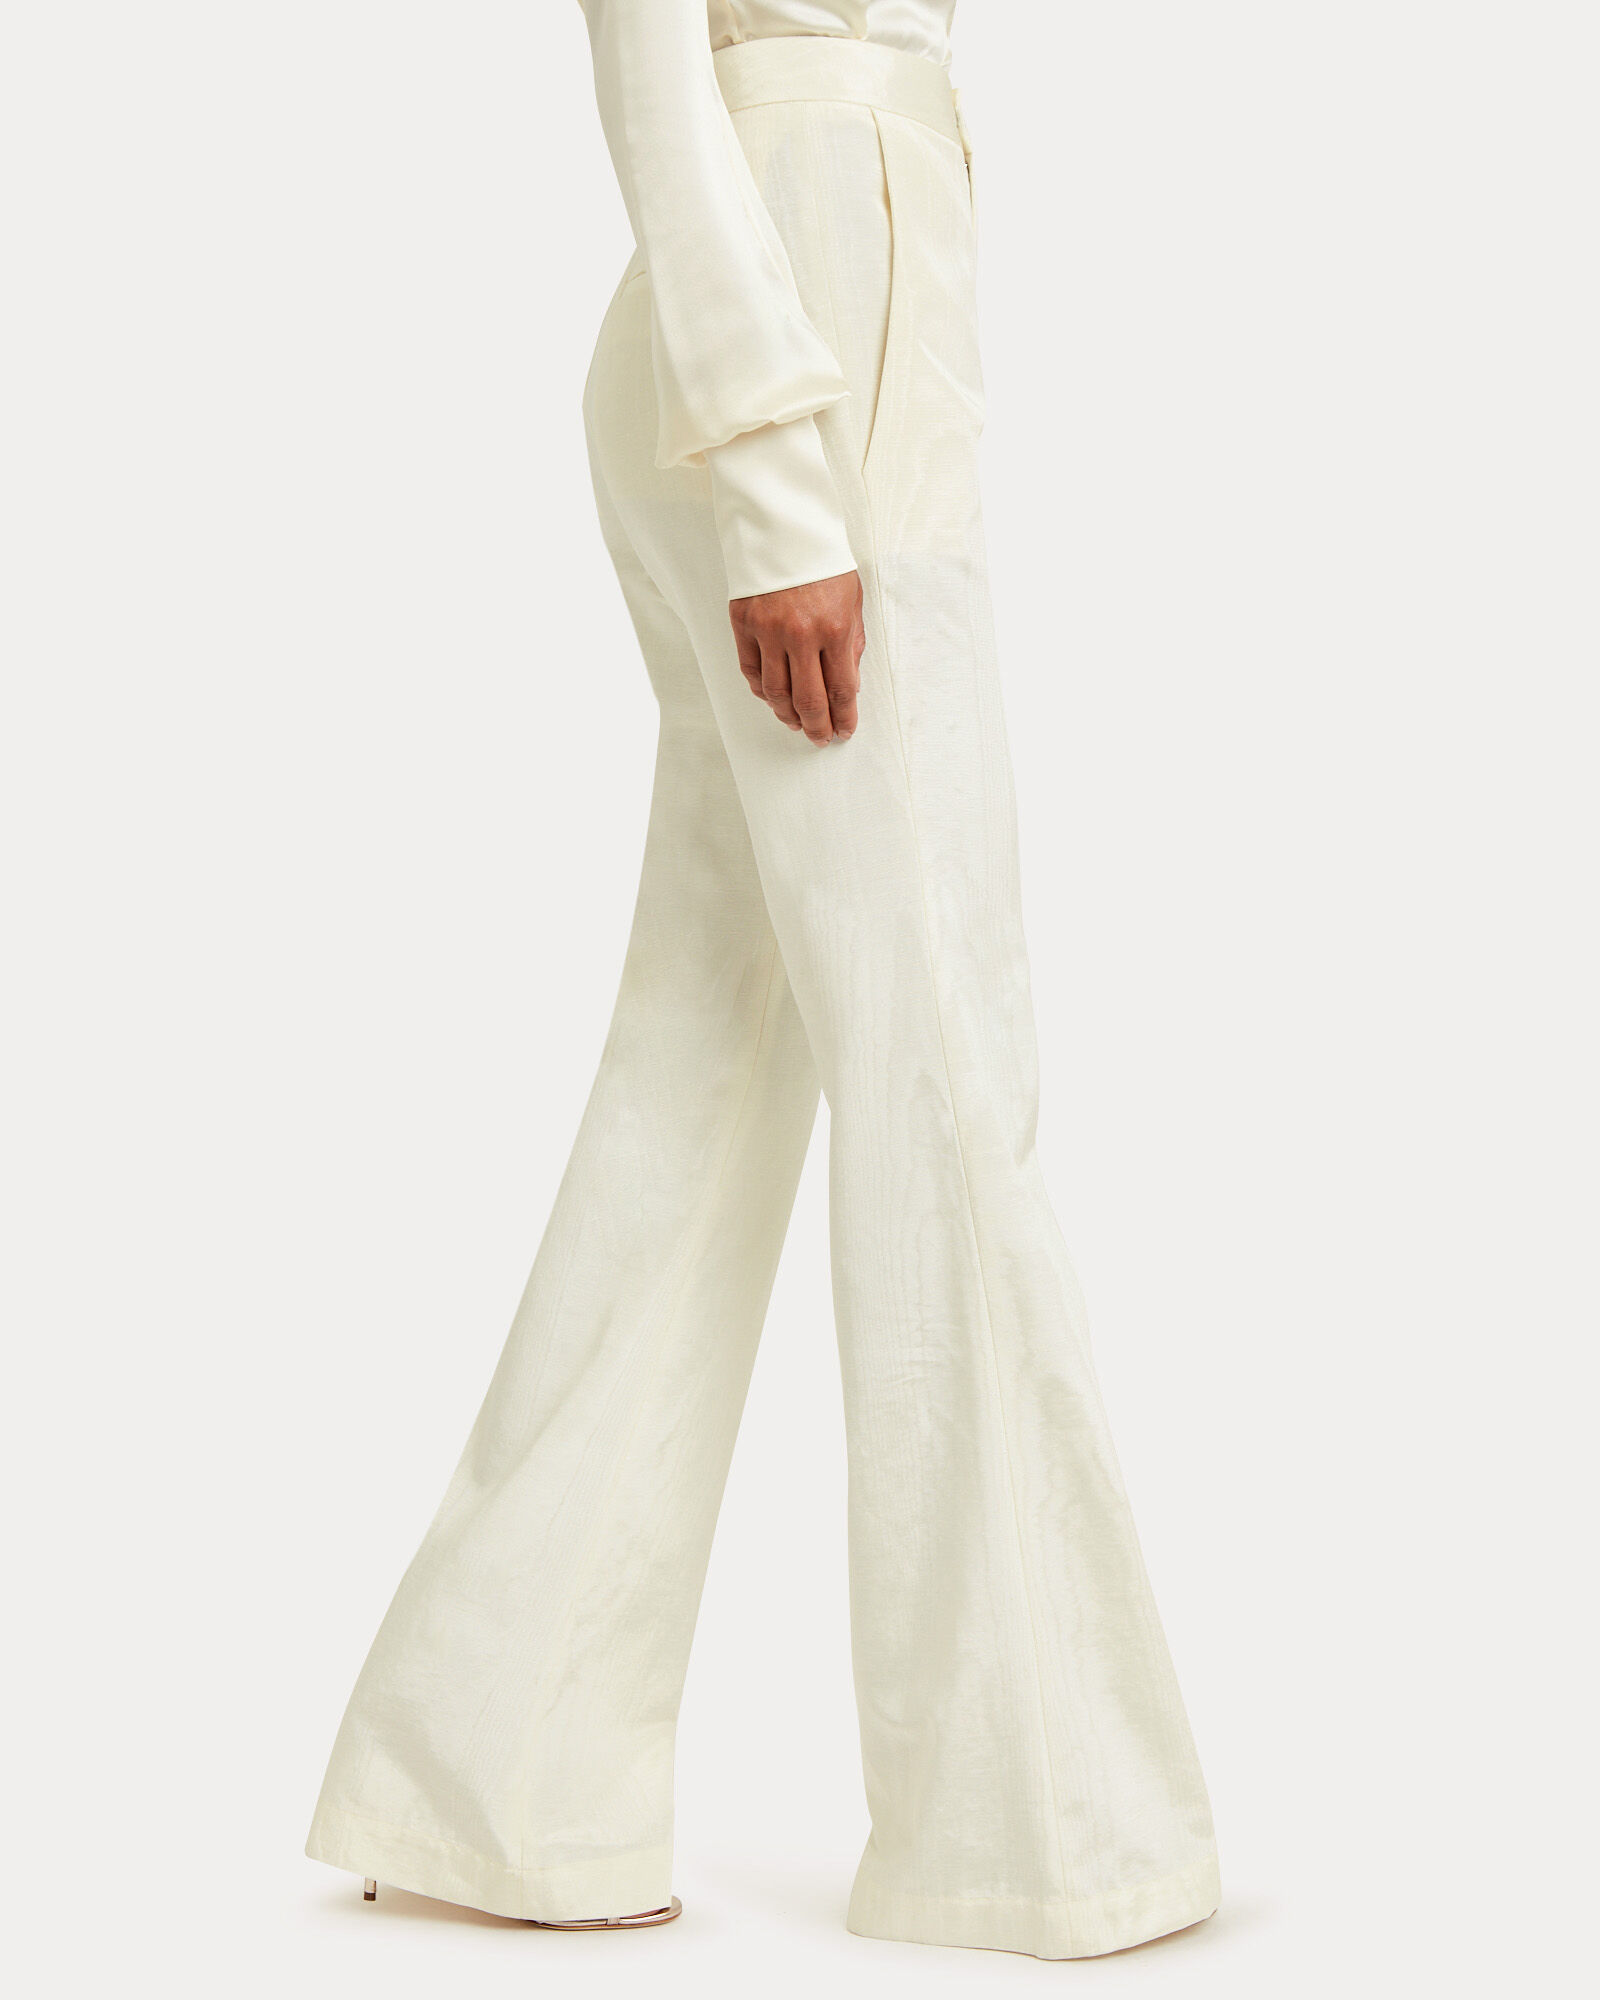 Erin Moiré Flared Trousers, IVORY, hi-res